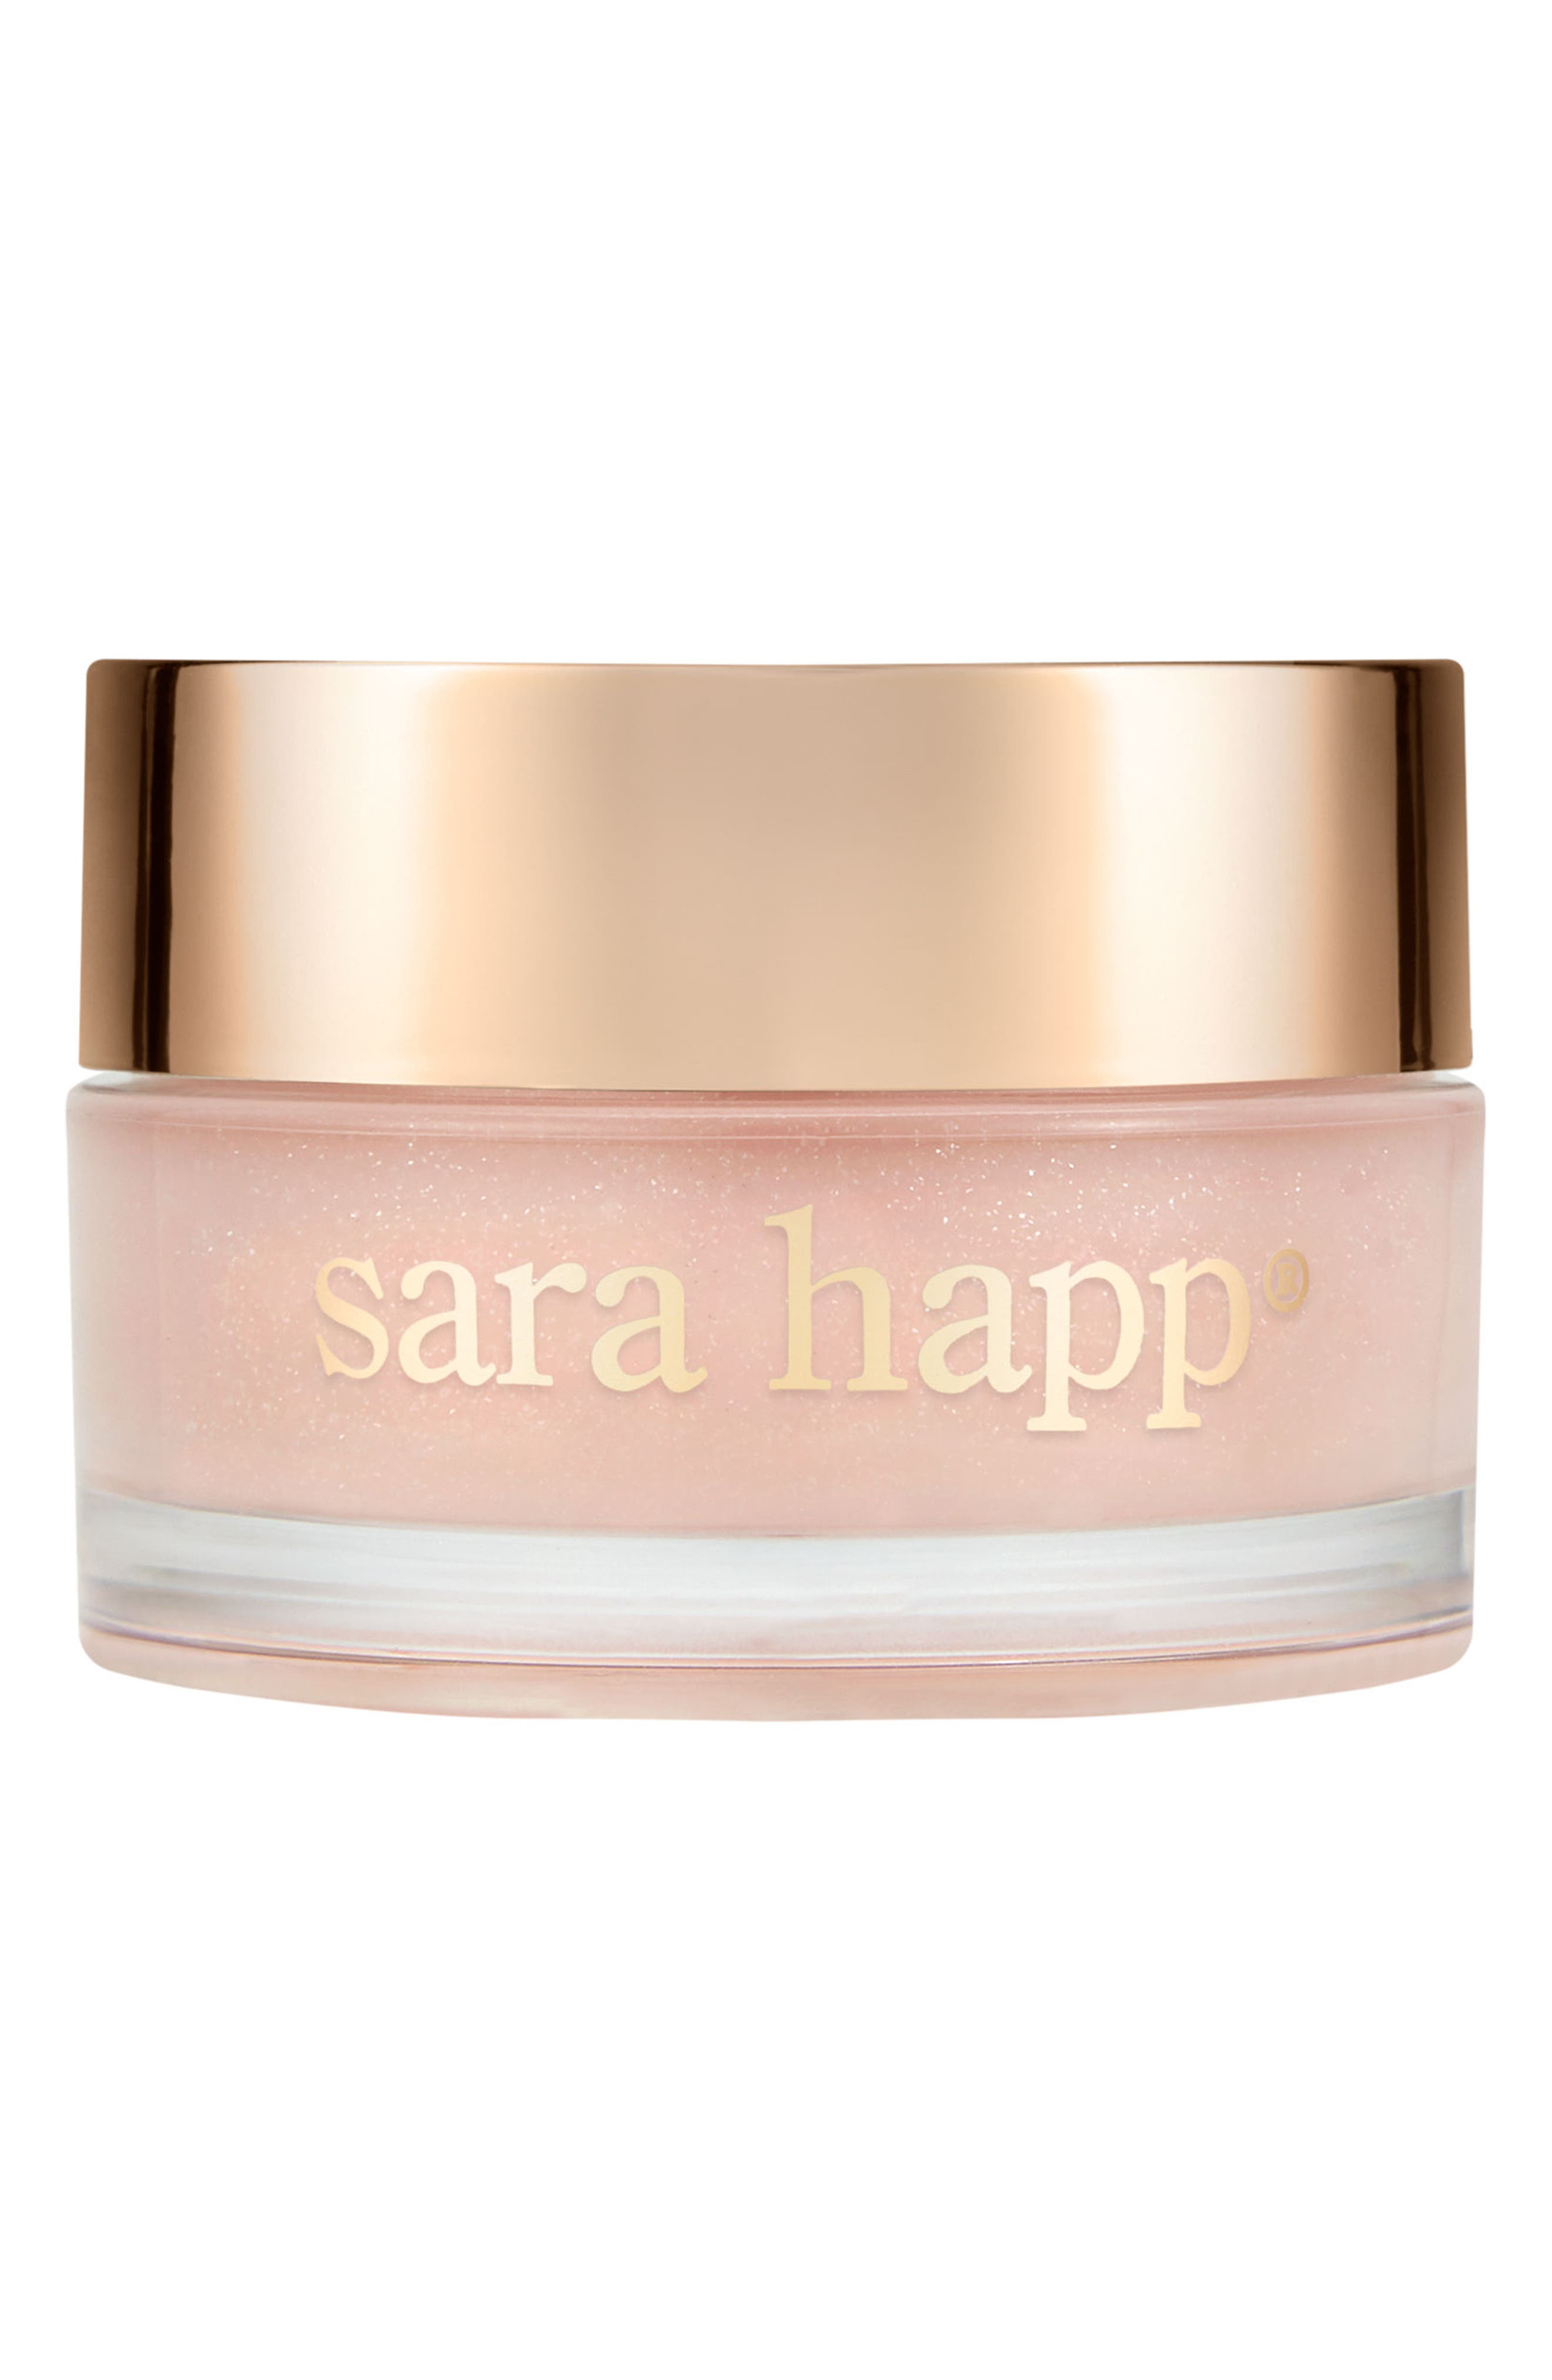 sara happ® The Lip Slip® One Luxe Balm